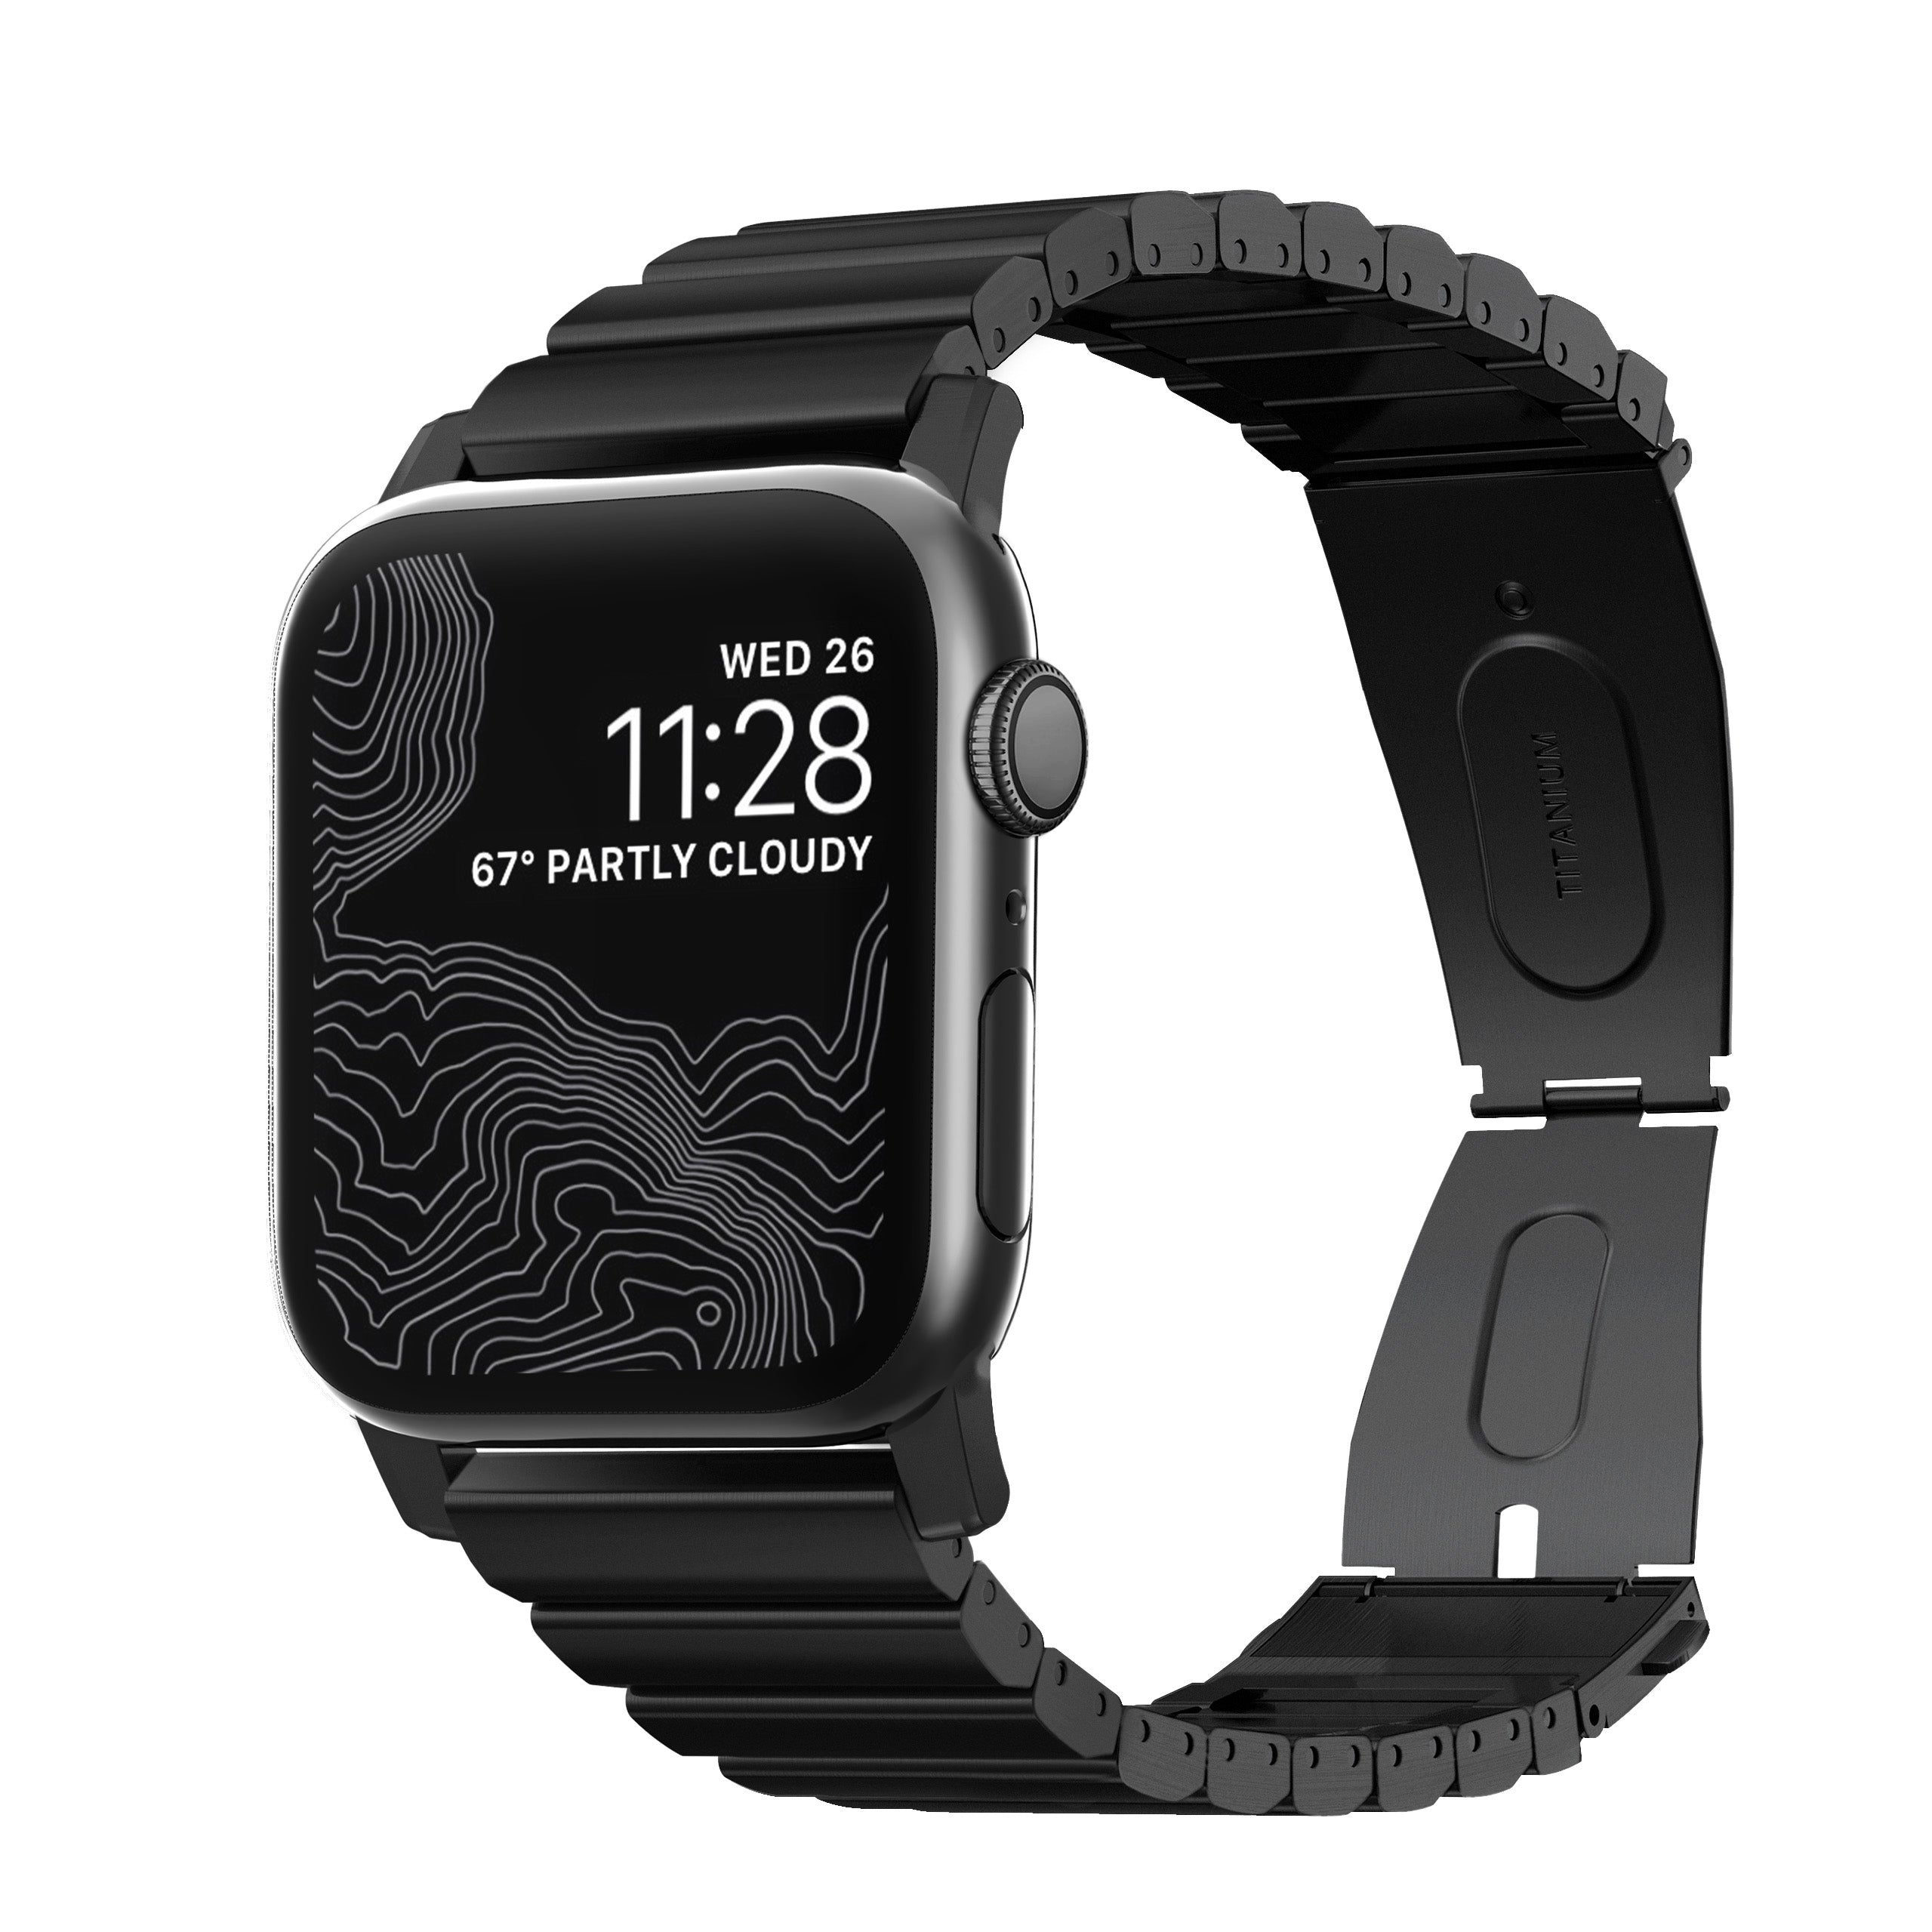 Titanium Band for Apple Watch 42/44mm - Black hardware